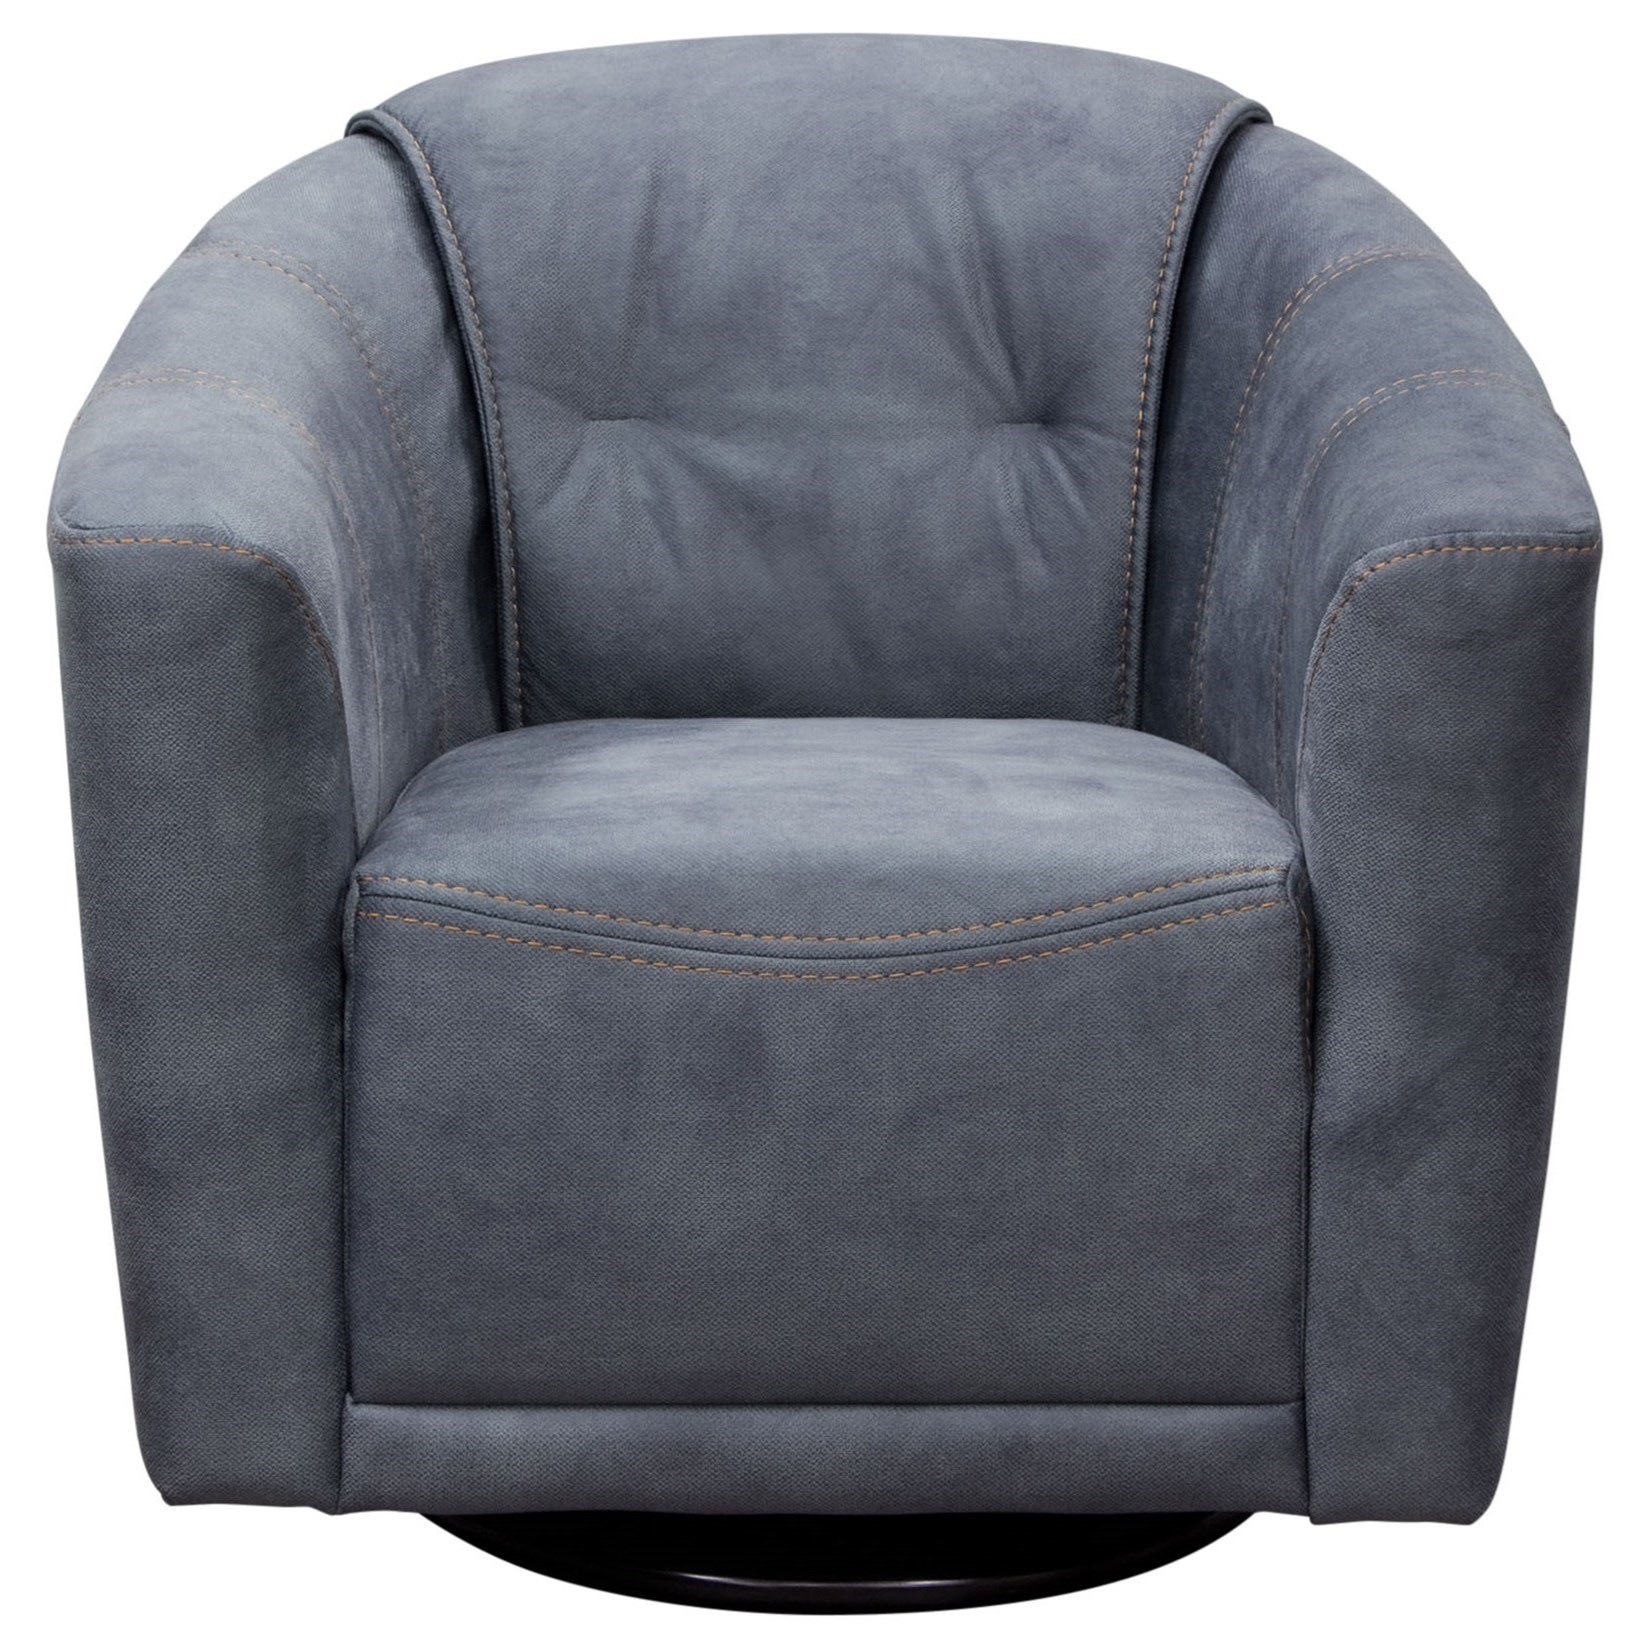 Diamond Sofa Accent Chairs Murphychgr Swivel Accent Chair